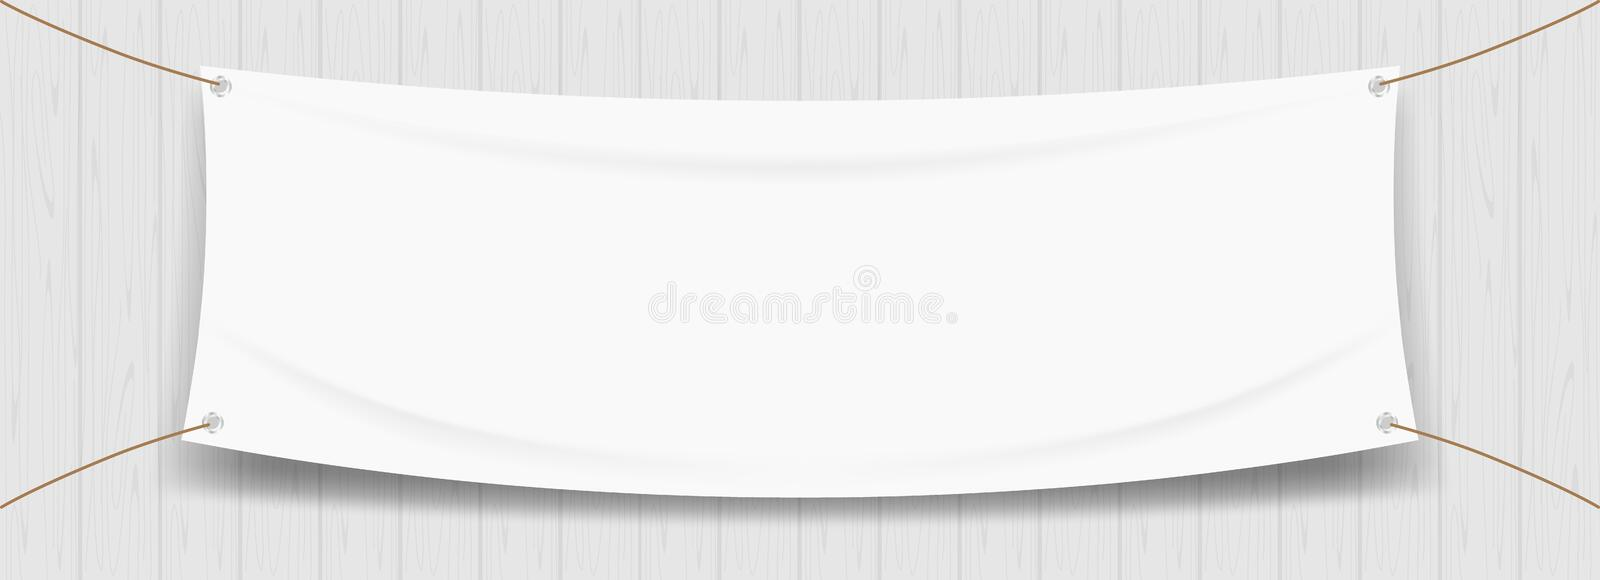 Vinyl banner blank white isolated on wood frame background, white mock up textile fabric empty for banner advertising stand stock illustration